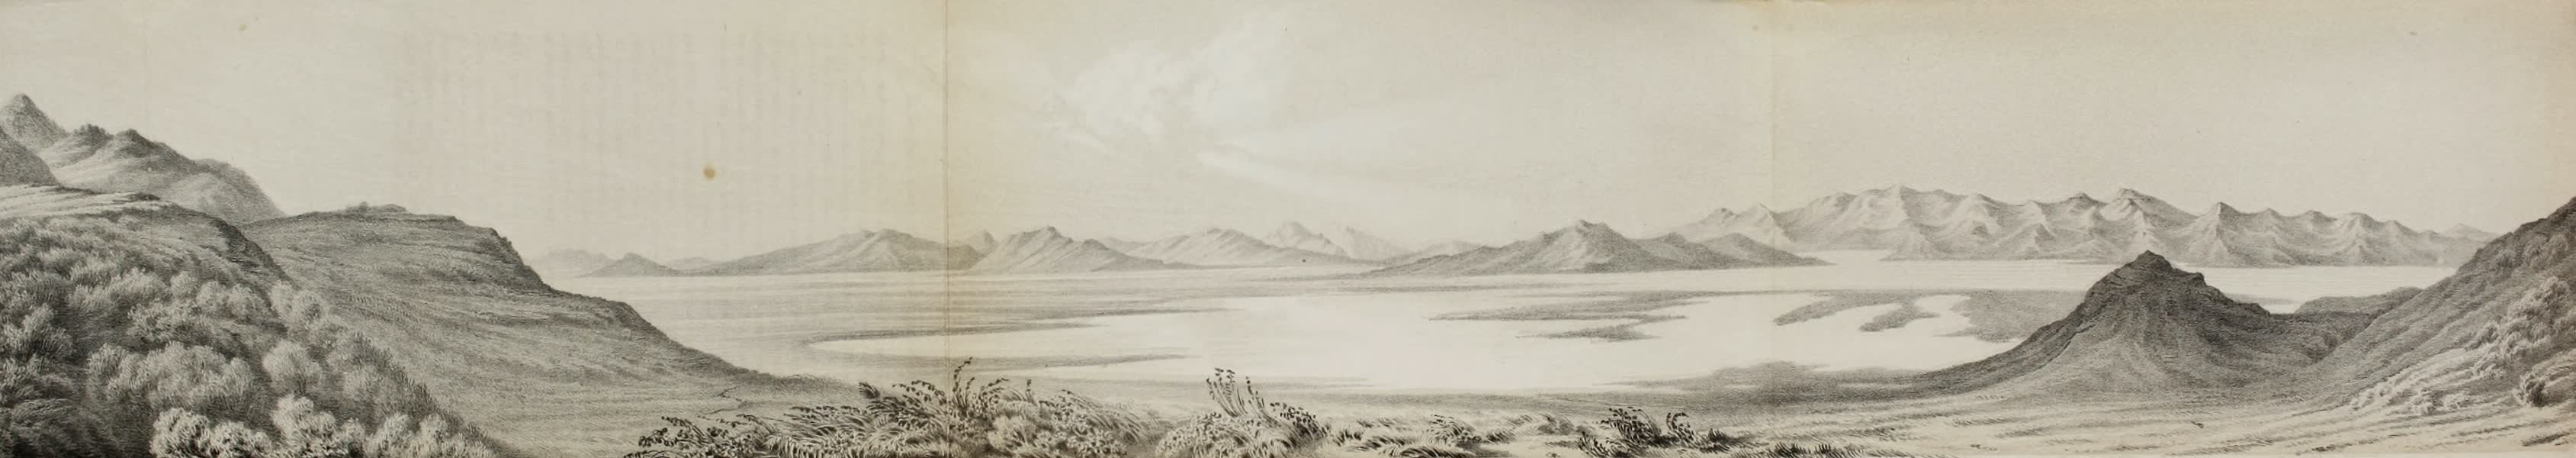 Exploration and Survey of the Valley of the Great Salt Lake of Utah - Panoramic View - Across Bear River Bay - Great Salt Lake (1852)